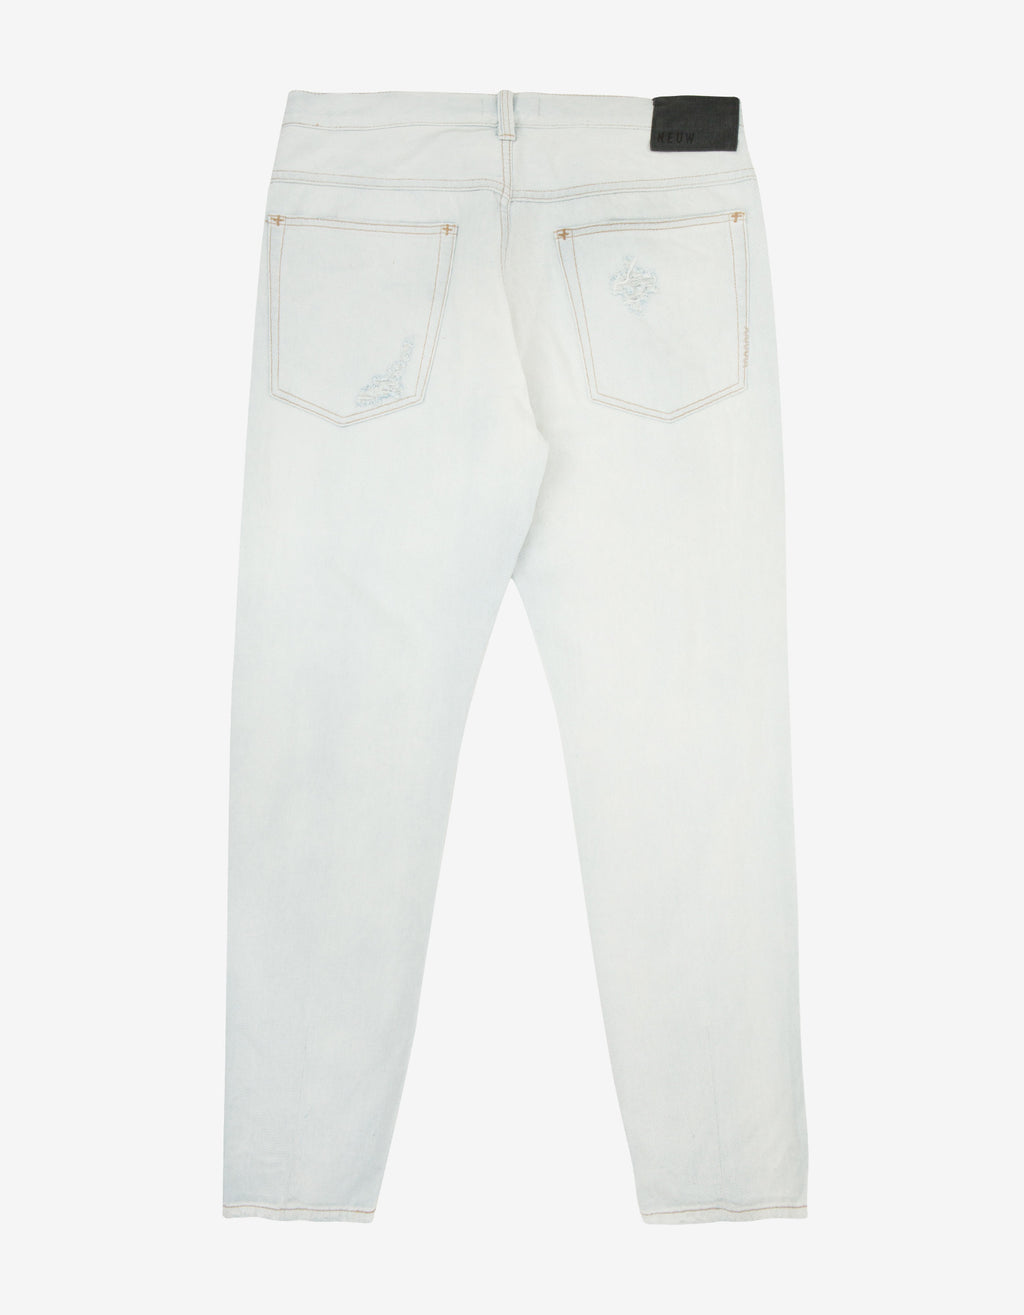 Studio Relaxed 'Hardcore Bleach' Denim Jeans